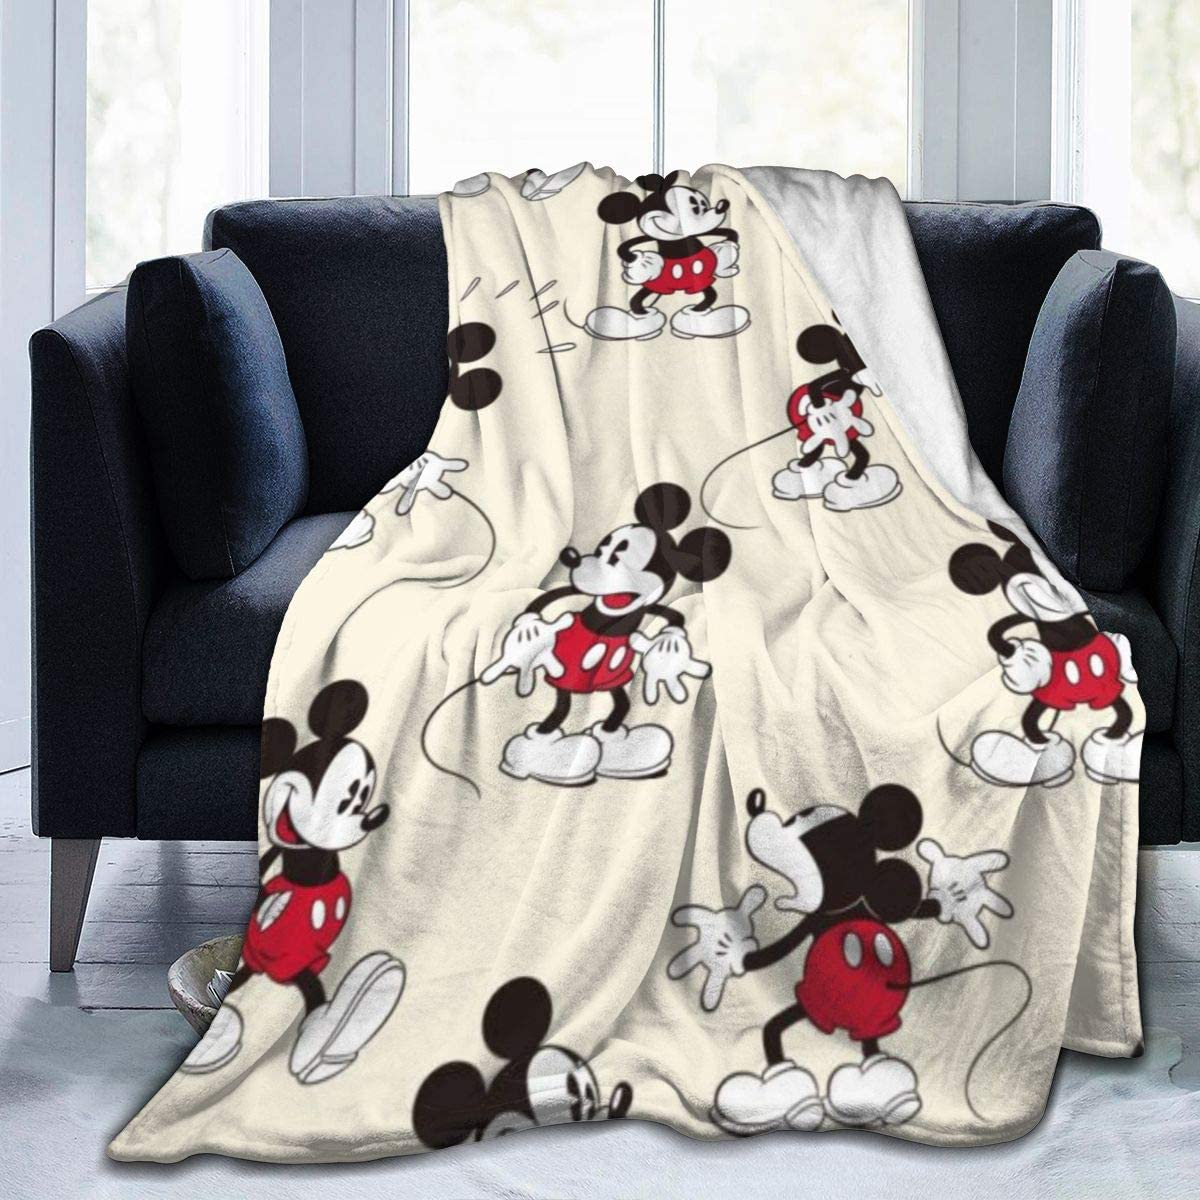 Max 62% OFF Sale special price Mickey Mouse Minnie Throw Blanket Ultra Soft Flannel Warm